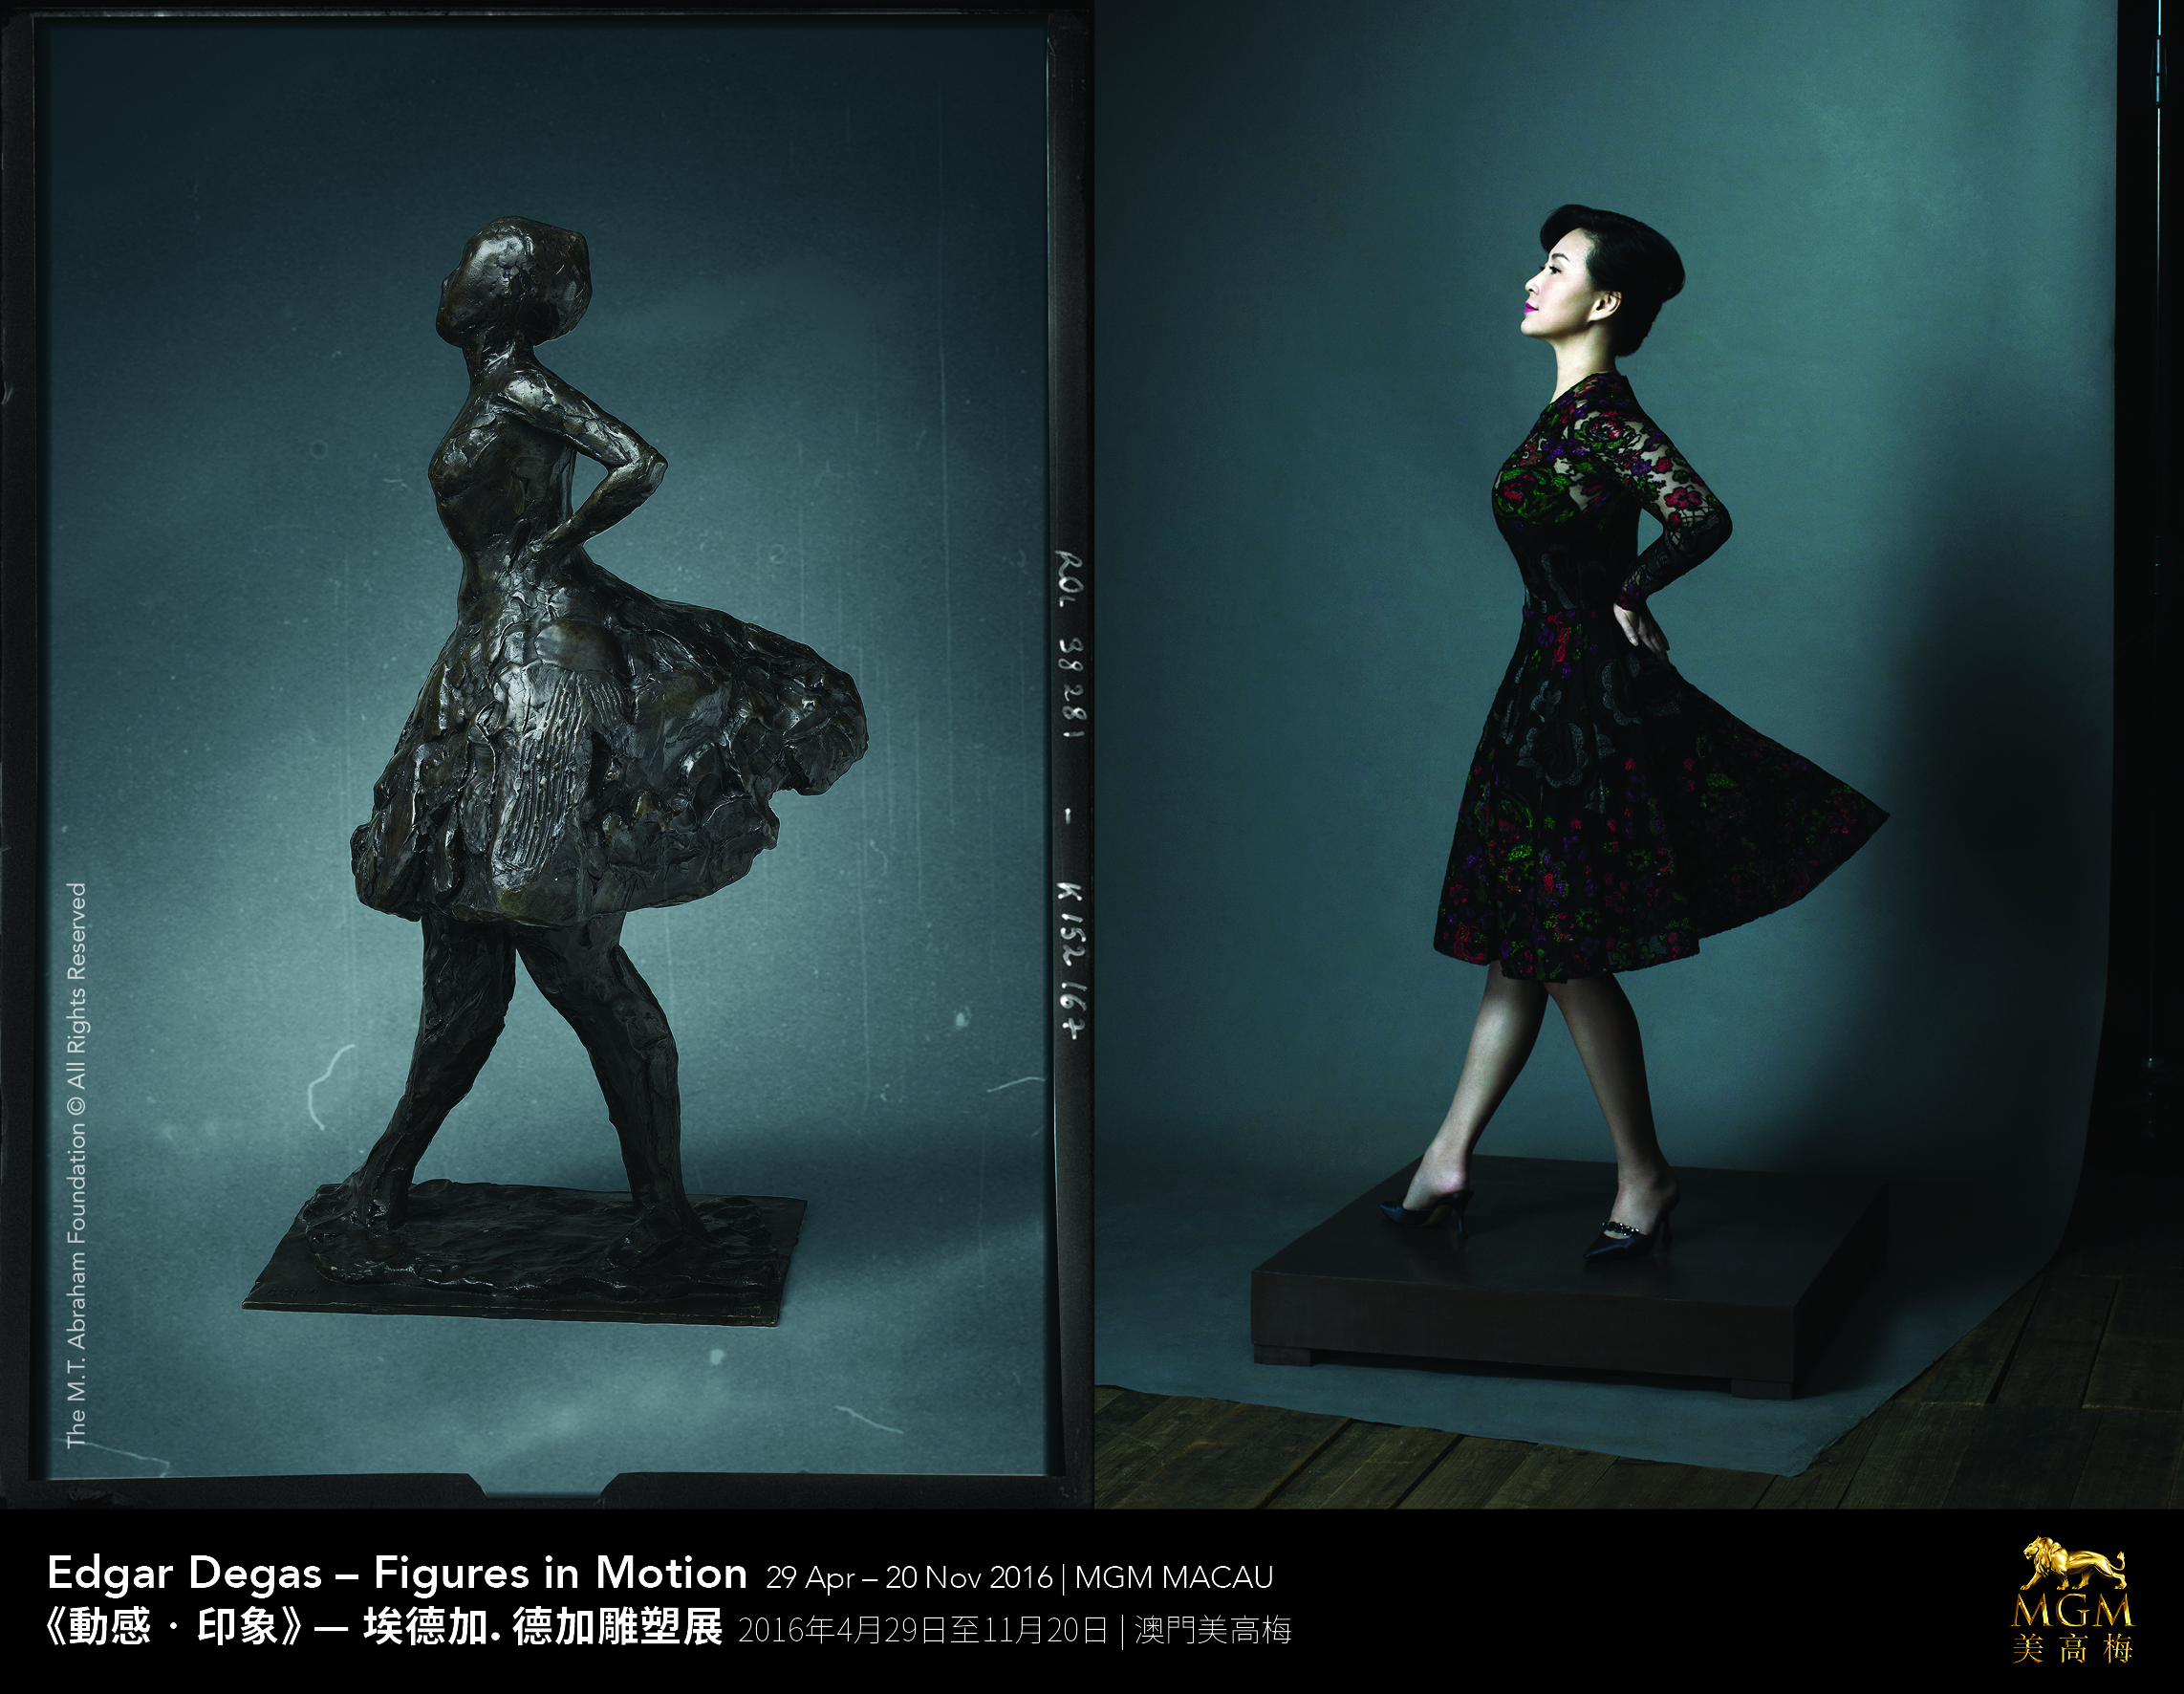 Pansy Ho posing for the campaign promoting MGM Macau's exhibition of Degas sculptures